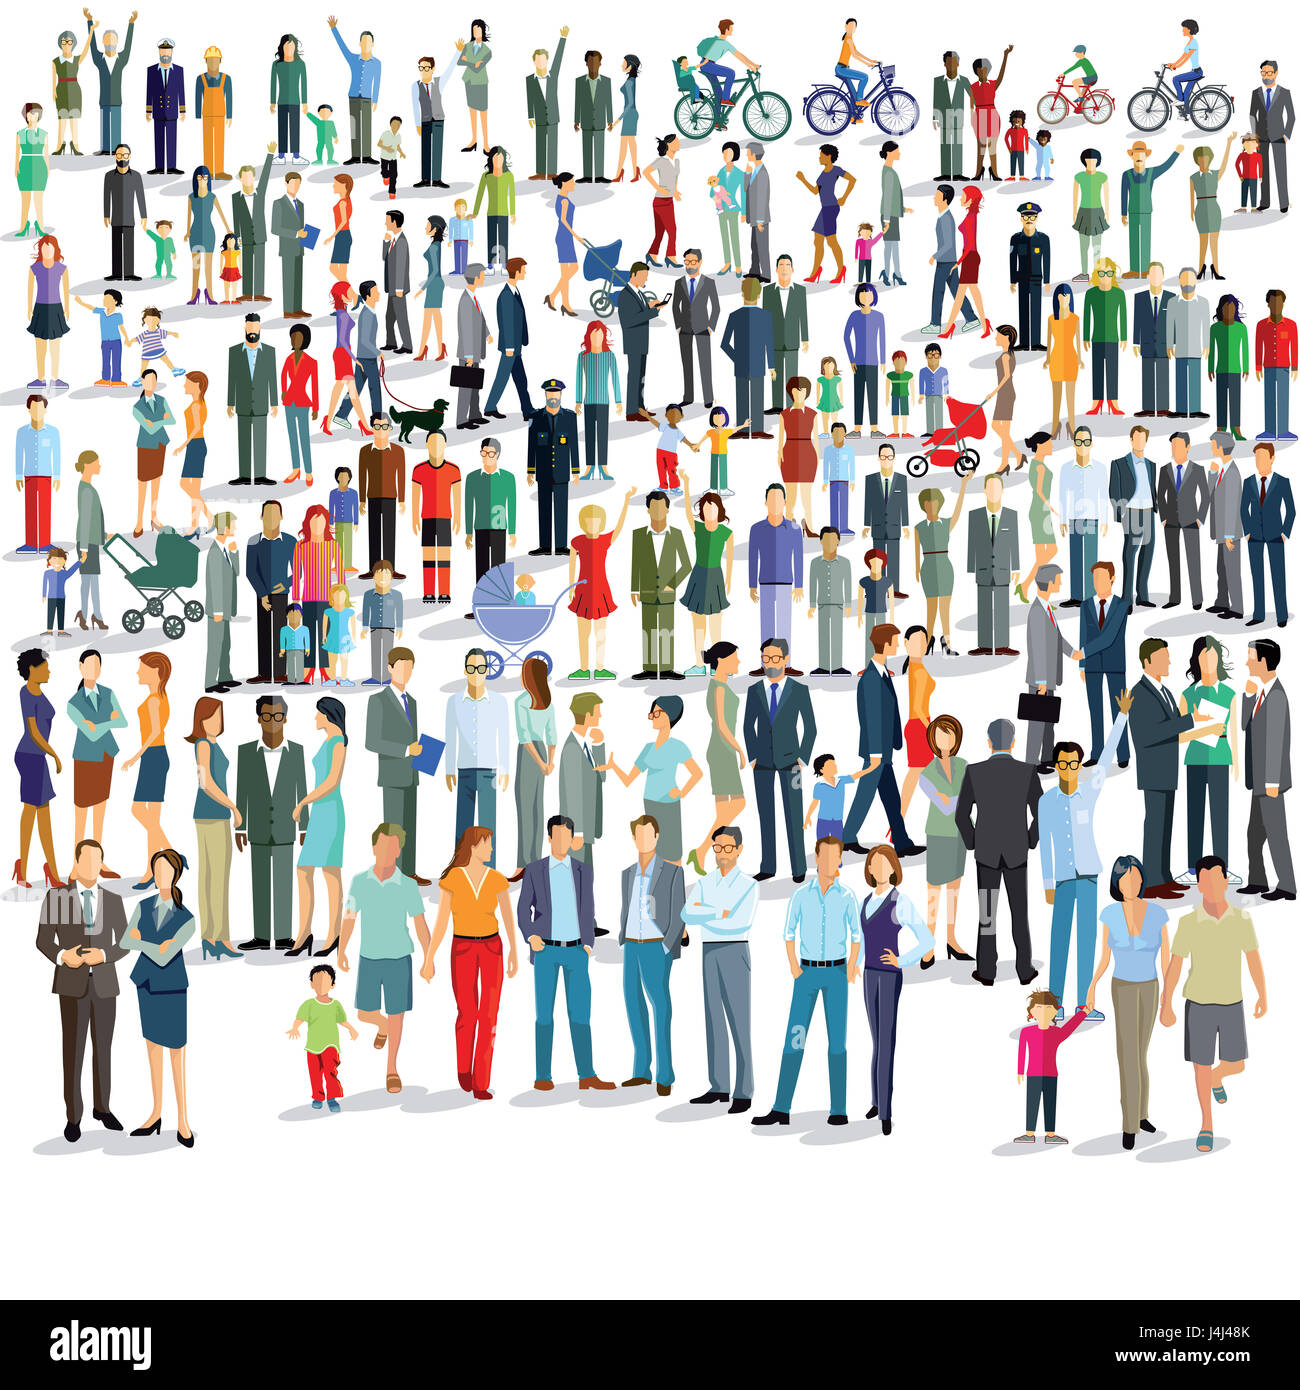 Large group of people standing together illustration - Stock Image